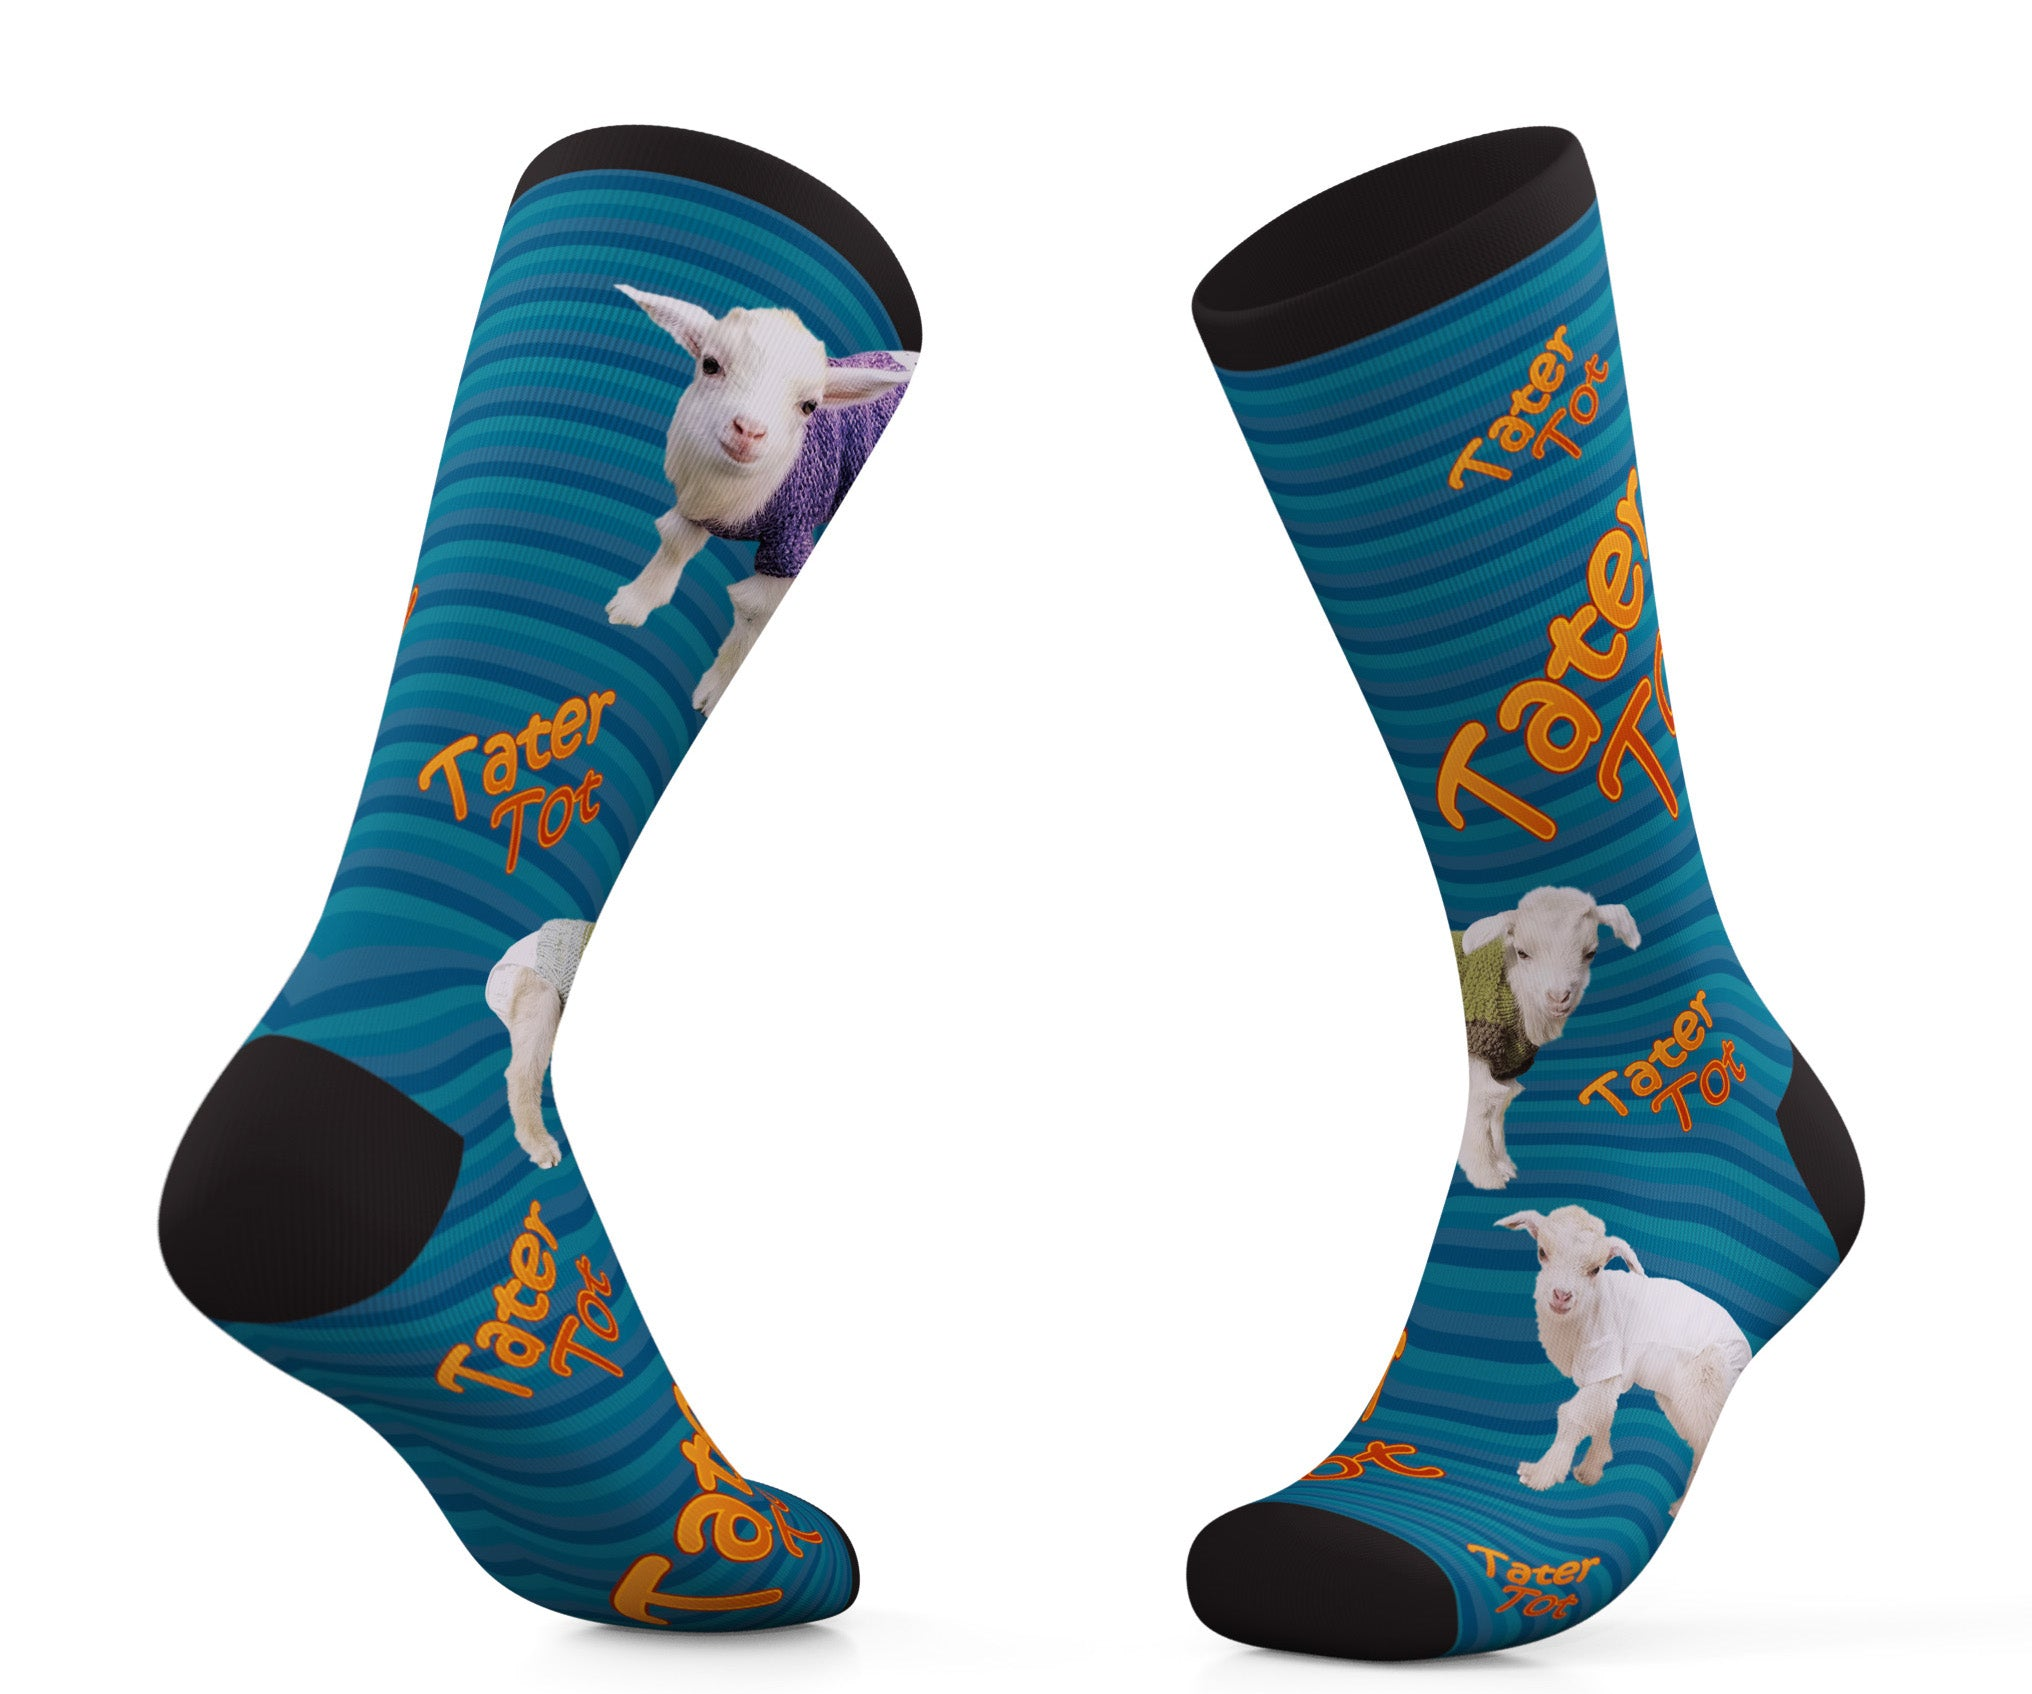 Goats of Anarchy Tater Tot Socks